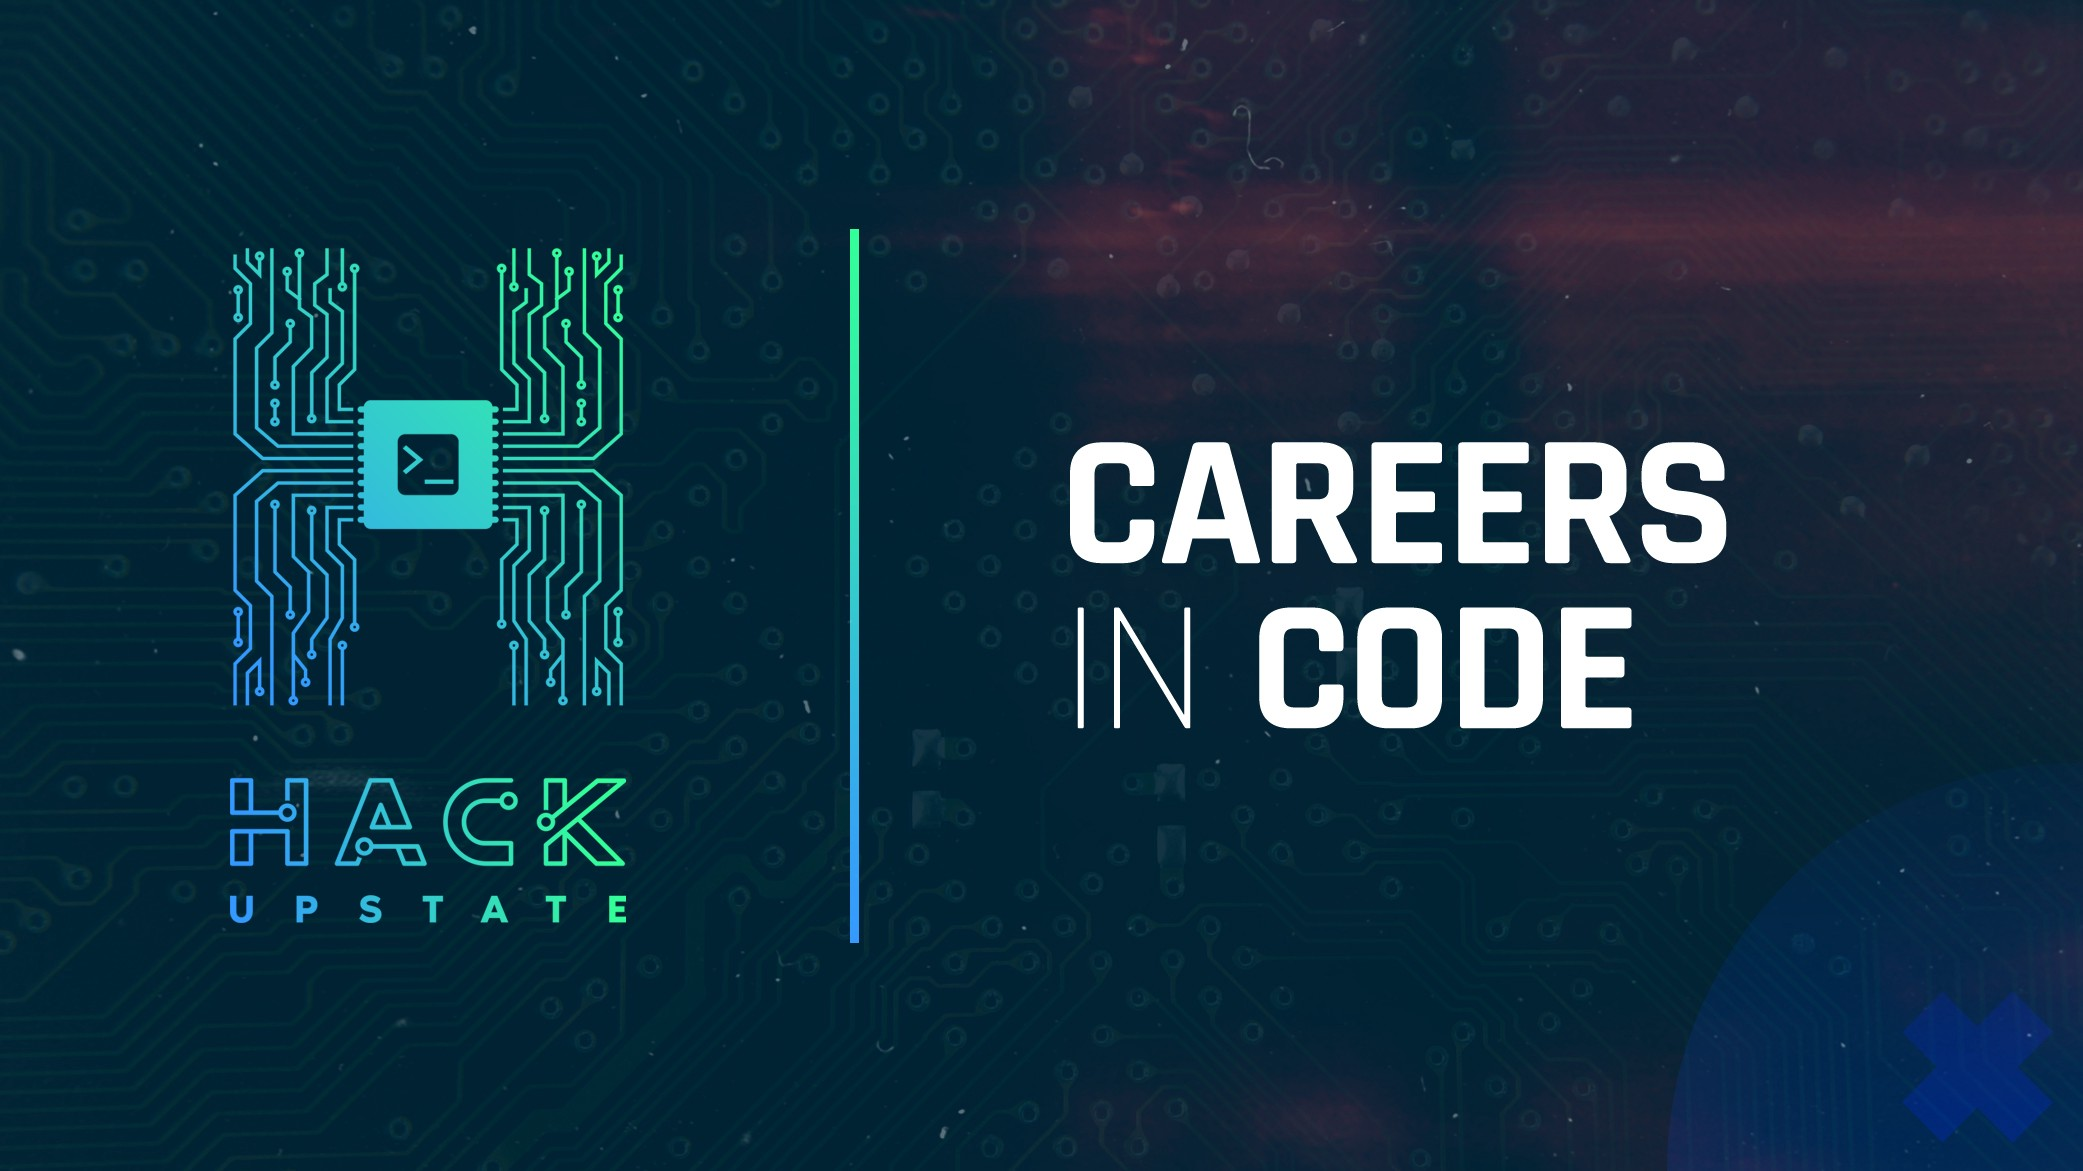 Announcing Hack Upstate's Careers in Code! - Hack Upstate